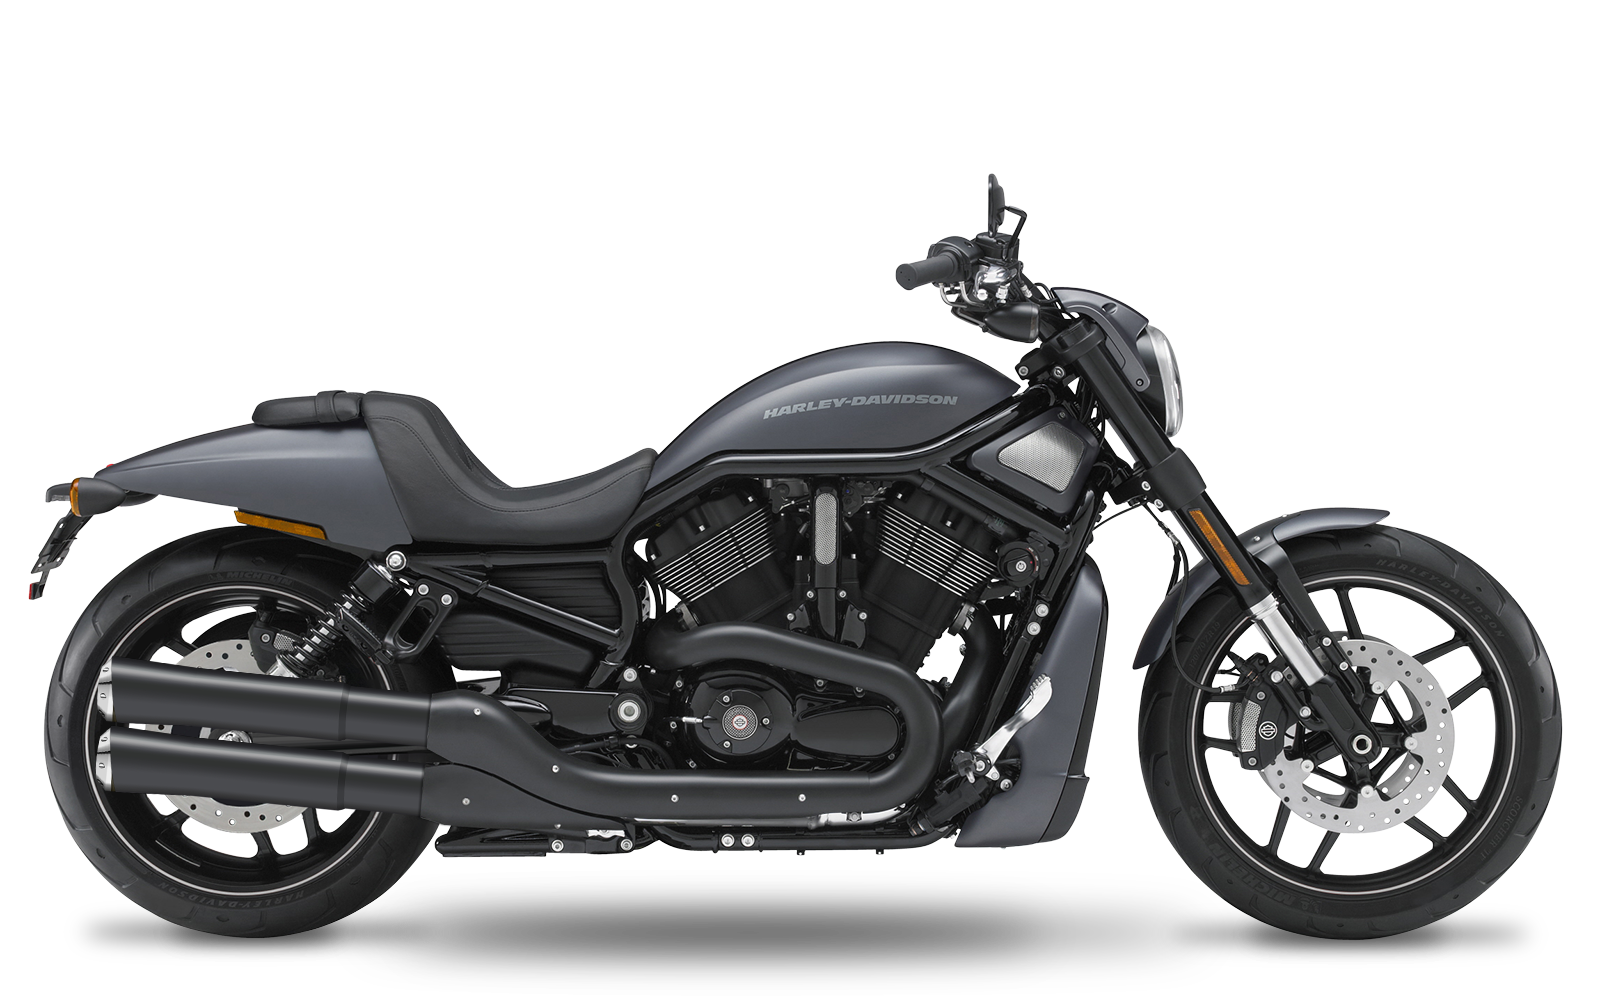 VRSC - Night Rod Special - 1250 - 2012-2017 - Endtöpfe